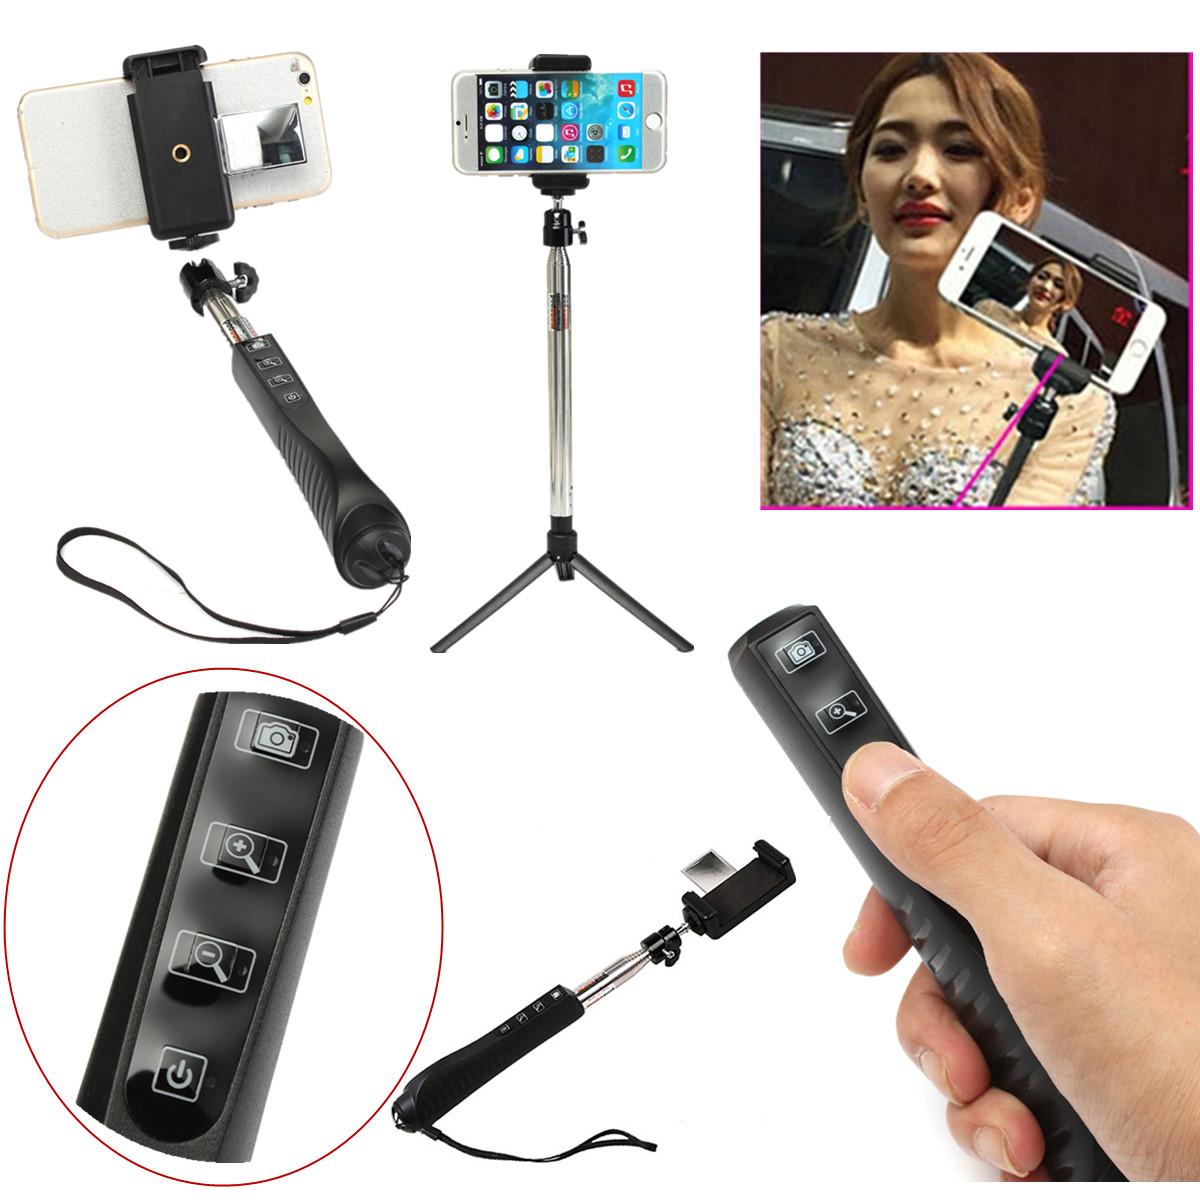 wireless bluetooth selfie stick monopod tripod for iphone 6 5 5ssamsung s6 edge ebay. Black Bedroom Furniture Sets. Home Design Ideas